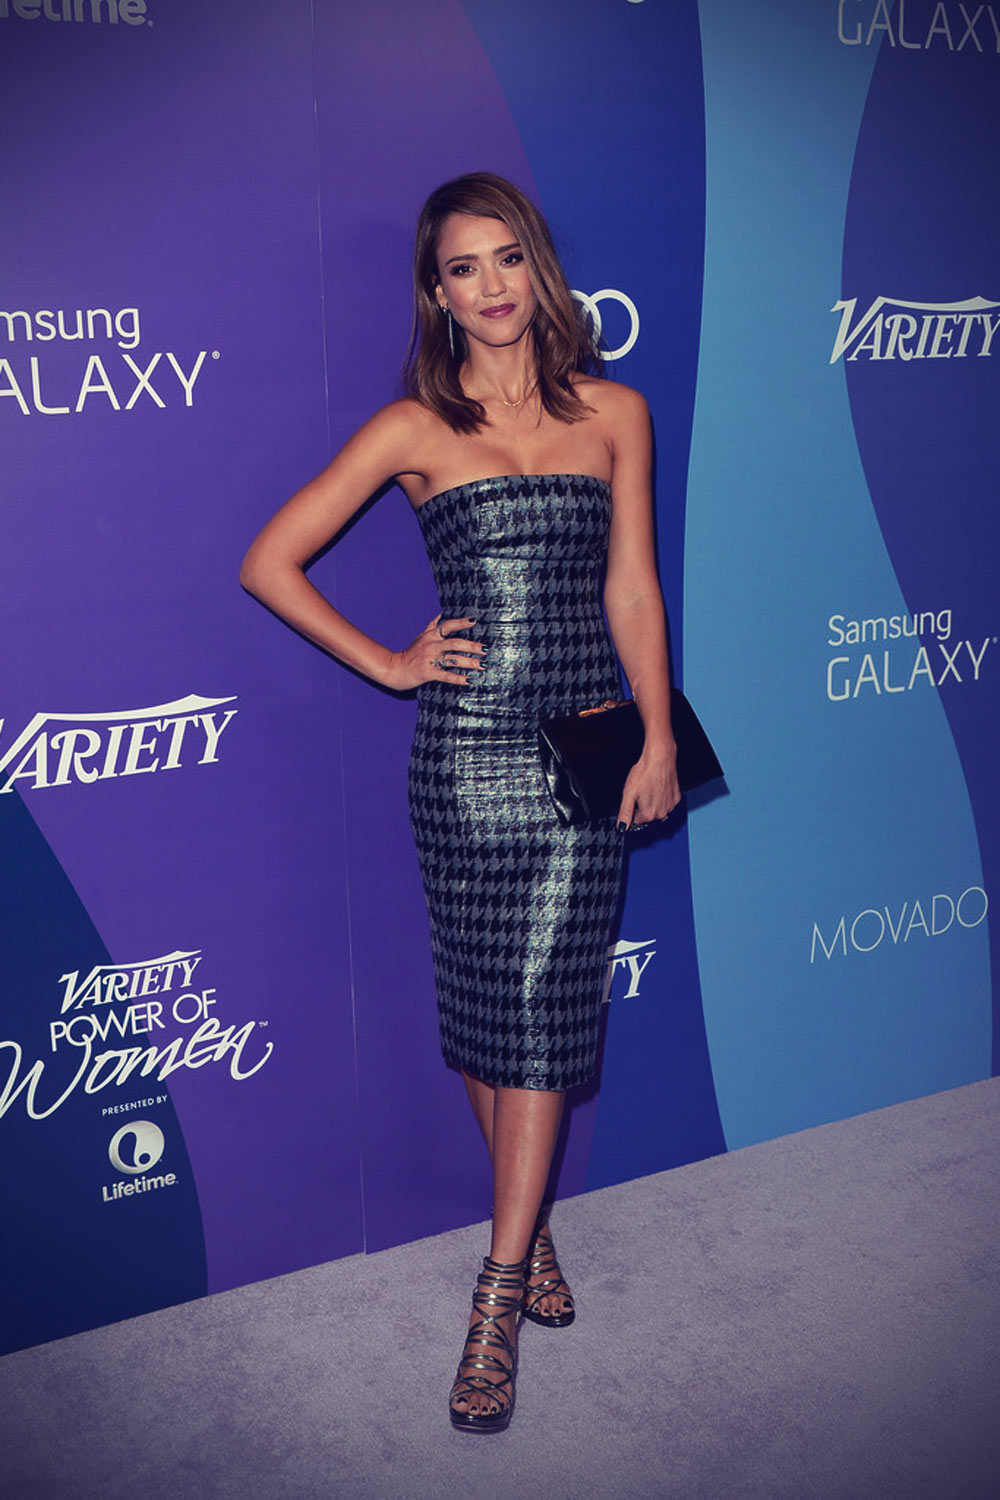 Jessica Alba attends 5th Annual Stars at Variety's Power of Women Event